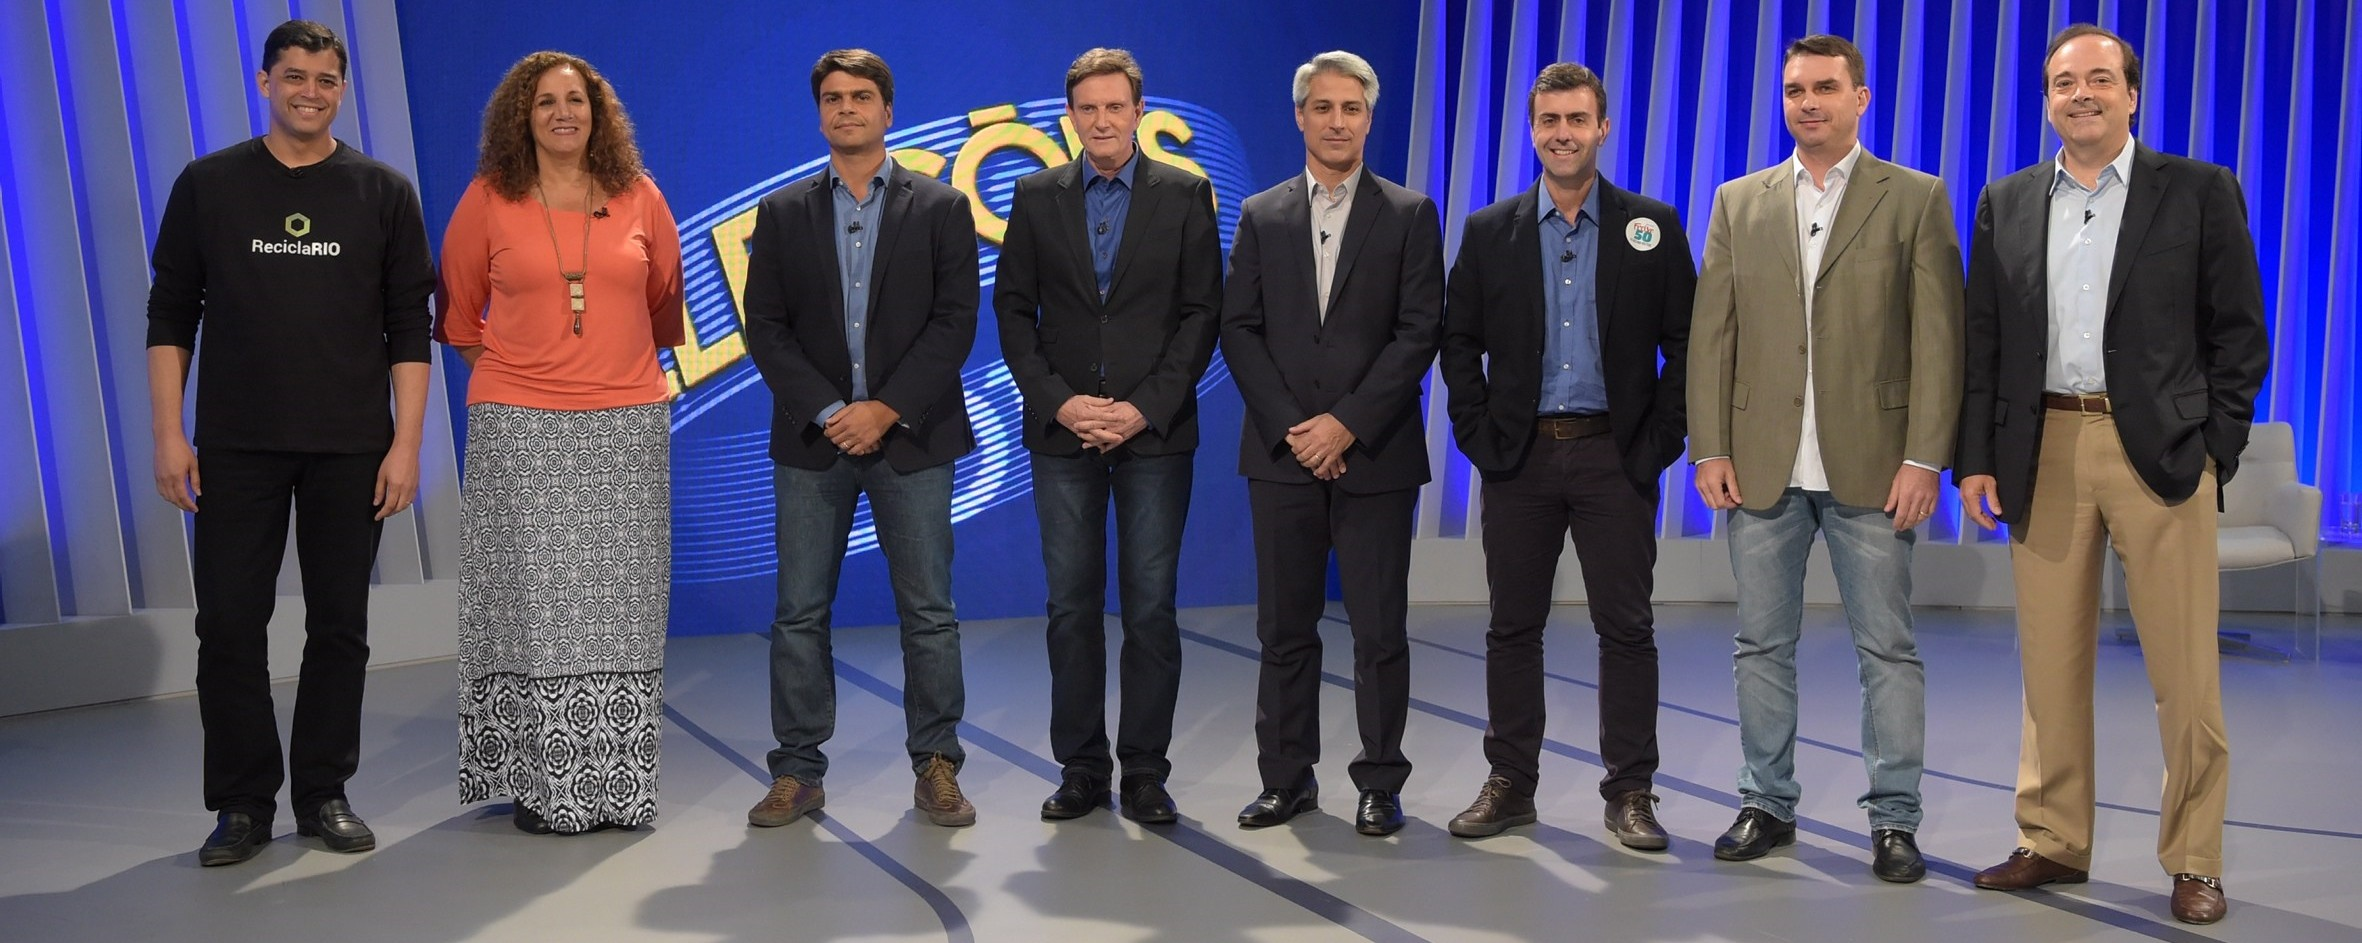 Os candidatos no debate da TV Globo